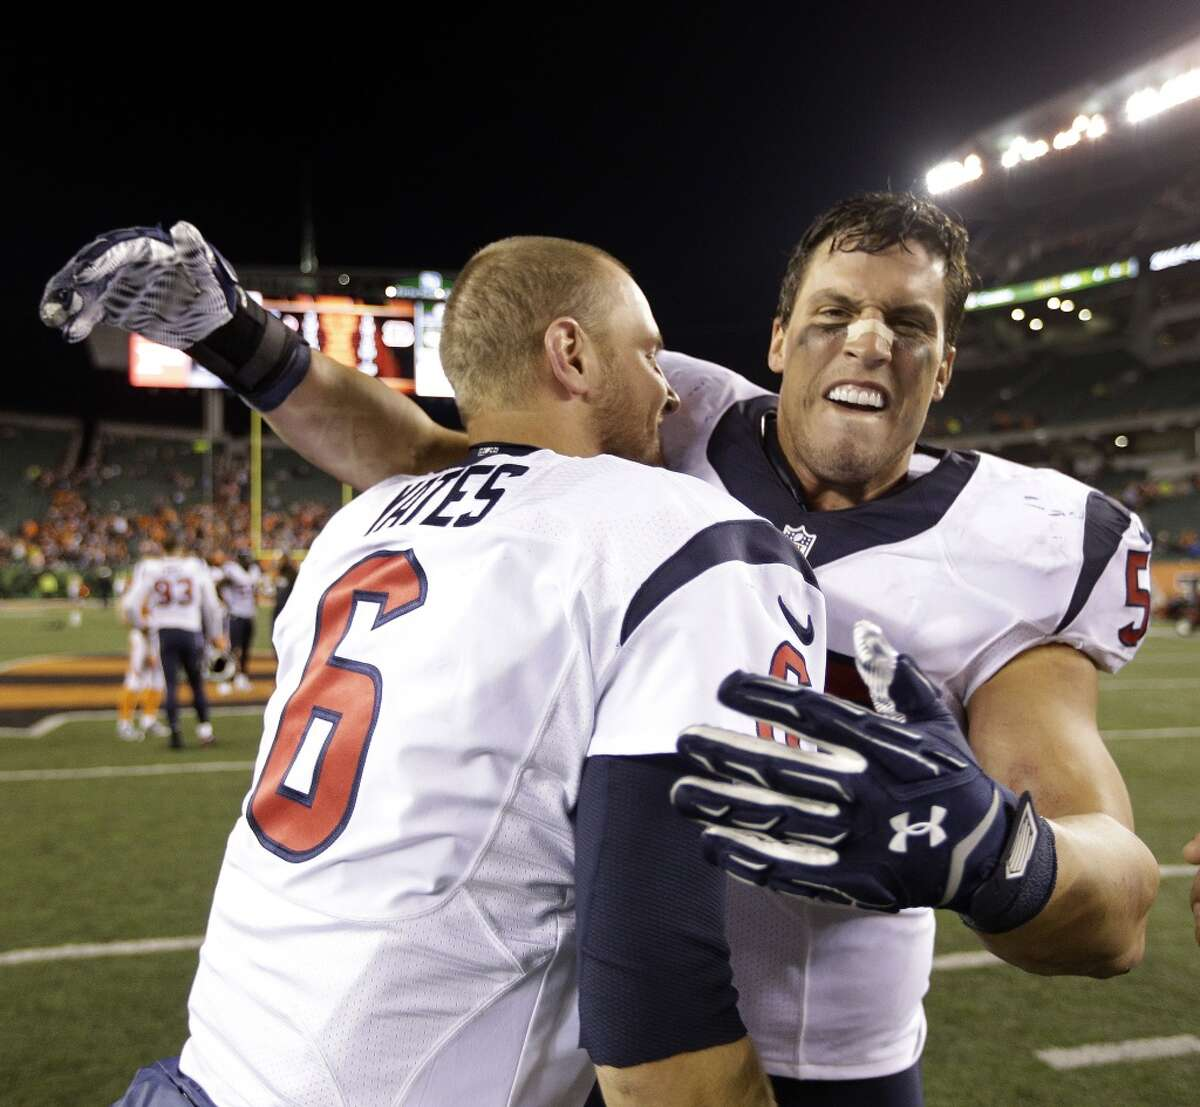 Houston Texans backup QB T.J. Yates (6) and inside linebacker Brian Cushing (56) celebrate the Texans 10-6 win over the Bengals during an NFL football game at Paul Brown Stadium on Monday, Nov. 16, 2015, in Cincinnati. ( Brett Coomer / Houston Chronicle )